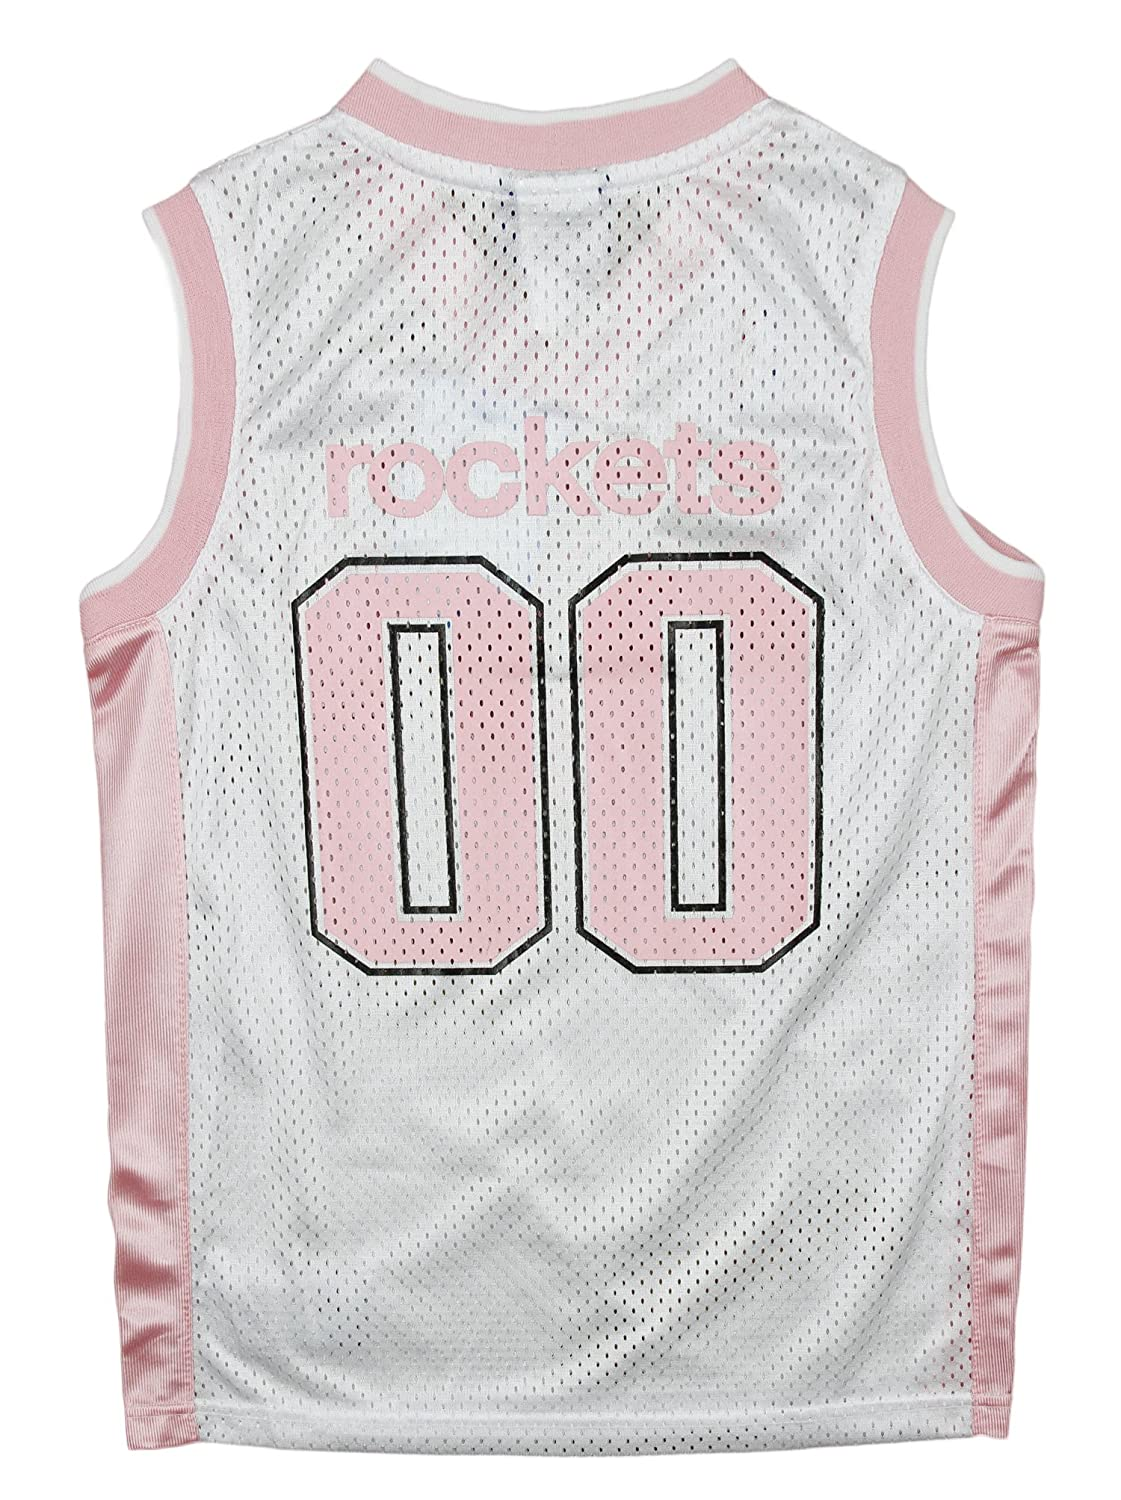 Reebok Houston Rockets NBA GirlS - Camiseta réplica de Manga Corta, Color Rosa, Hombre, Color Blanco/Rosa, tamaño 42 ES/X-Large: Amazon.es: Ropa y ...